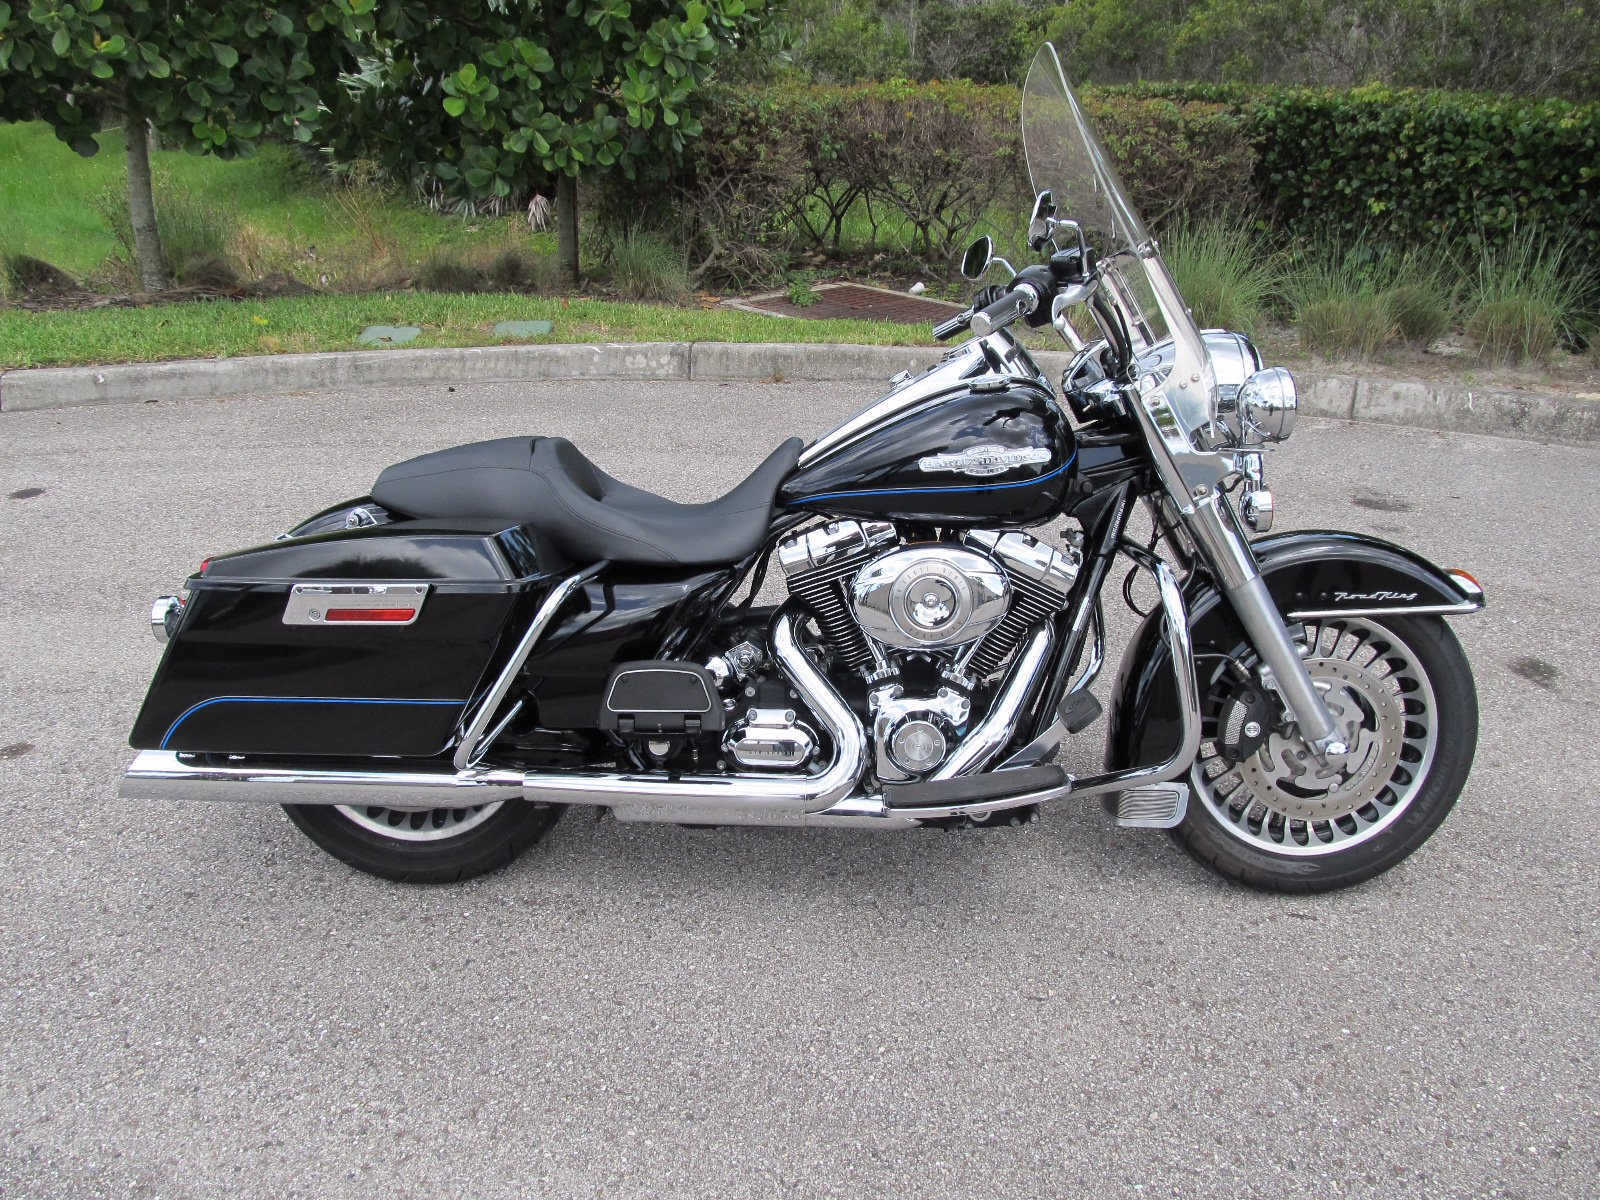 Pre-Owned 2010 Harley-Davidson Road King FLHR